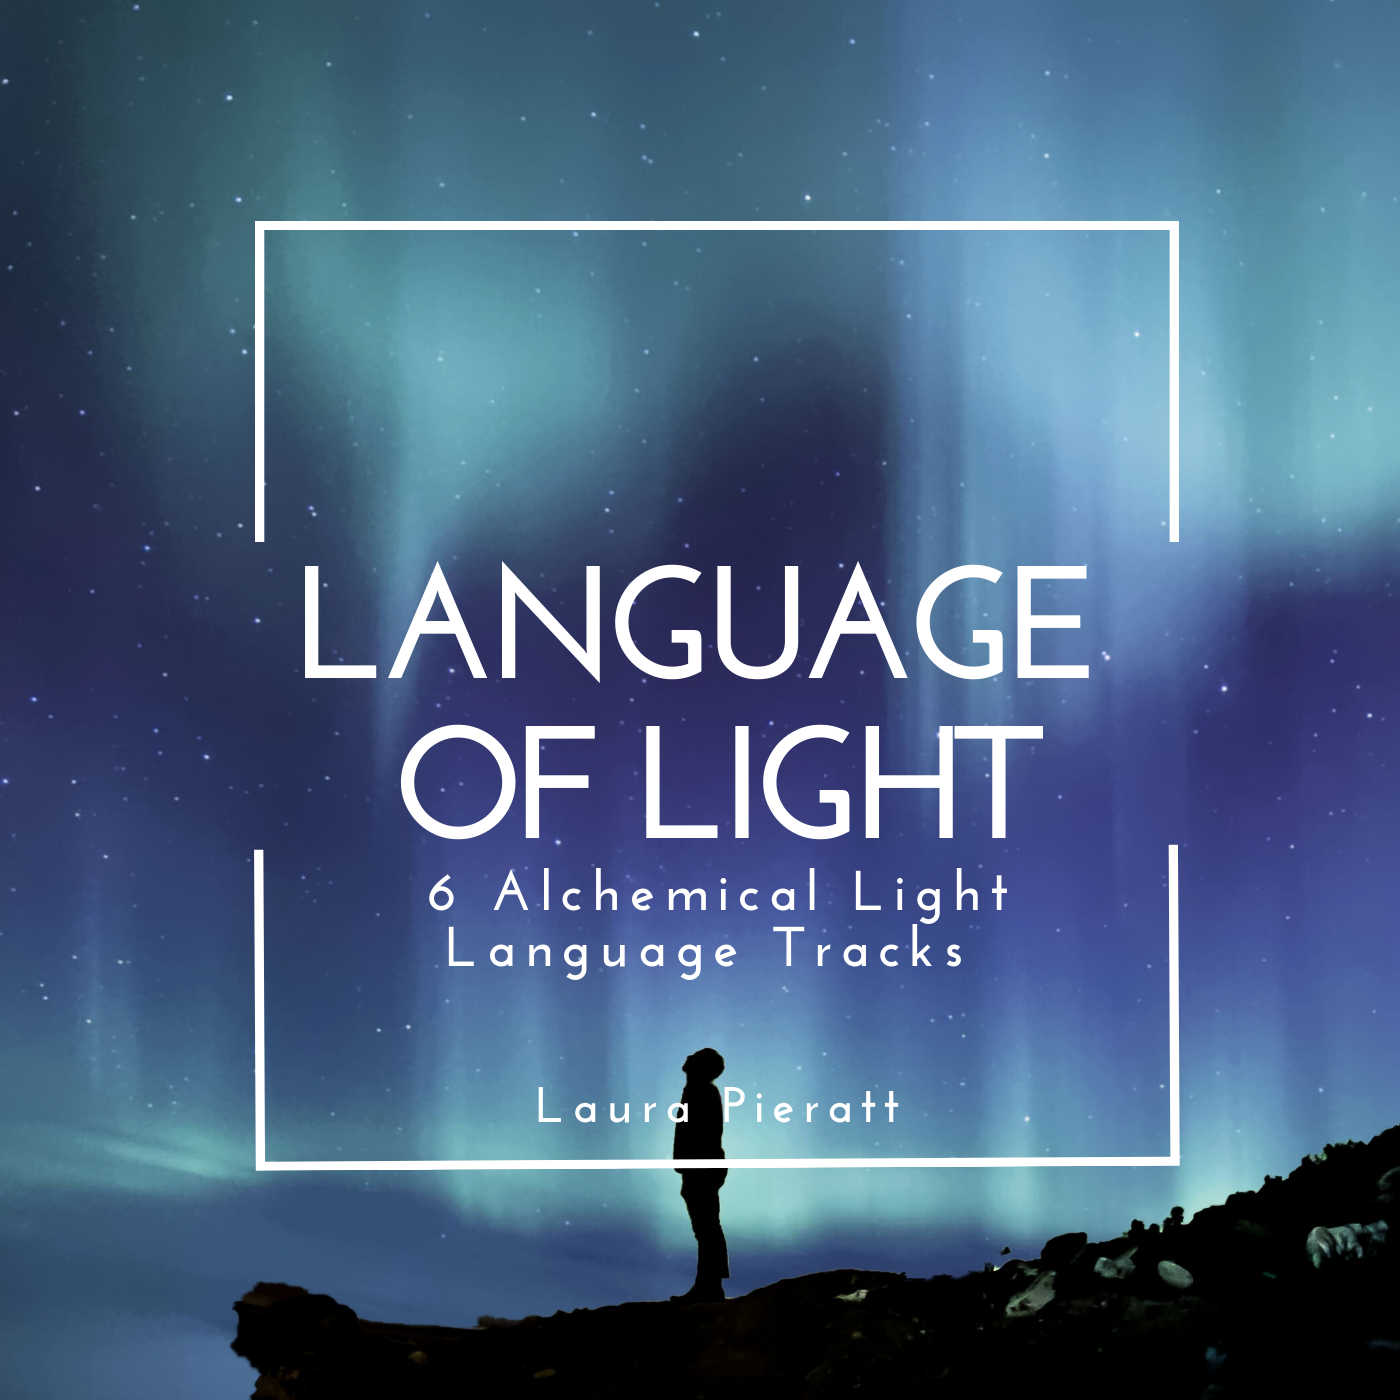 Language of Light Album by Laura Pieratt